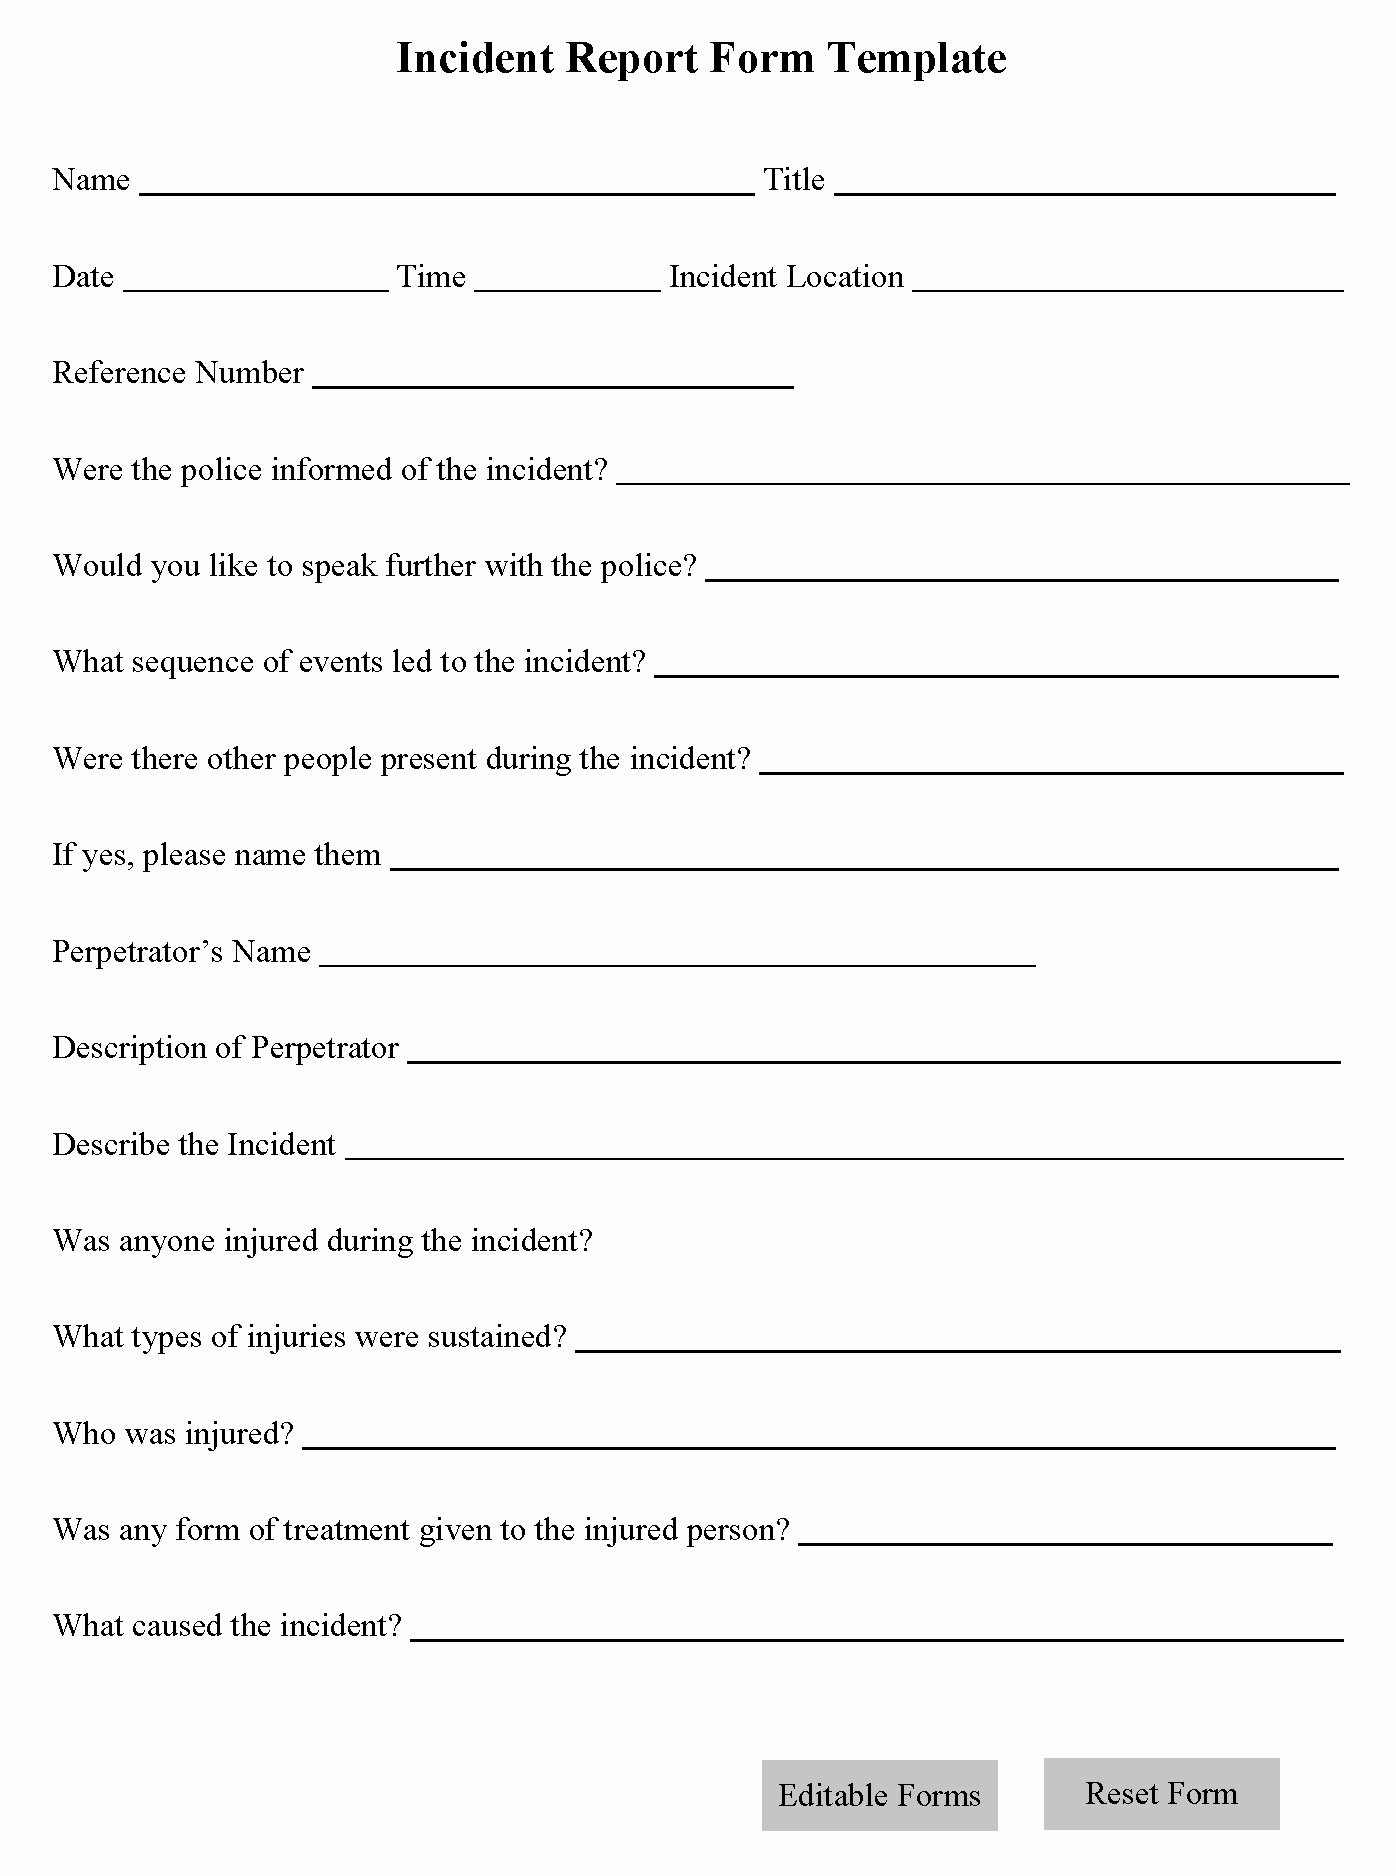 Incident Report form Template